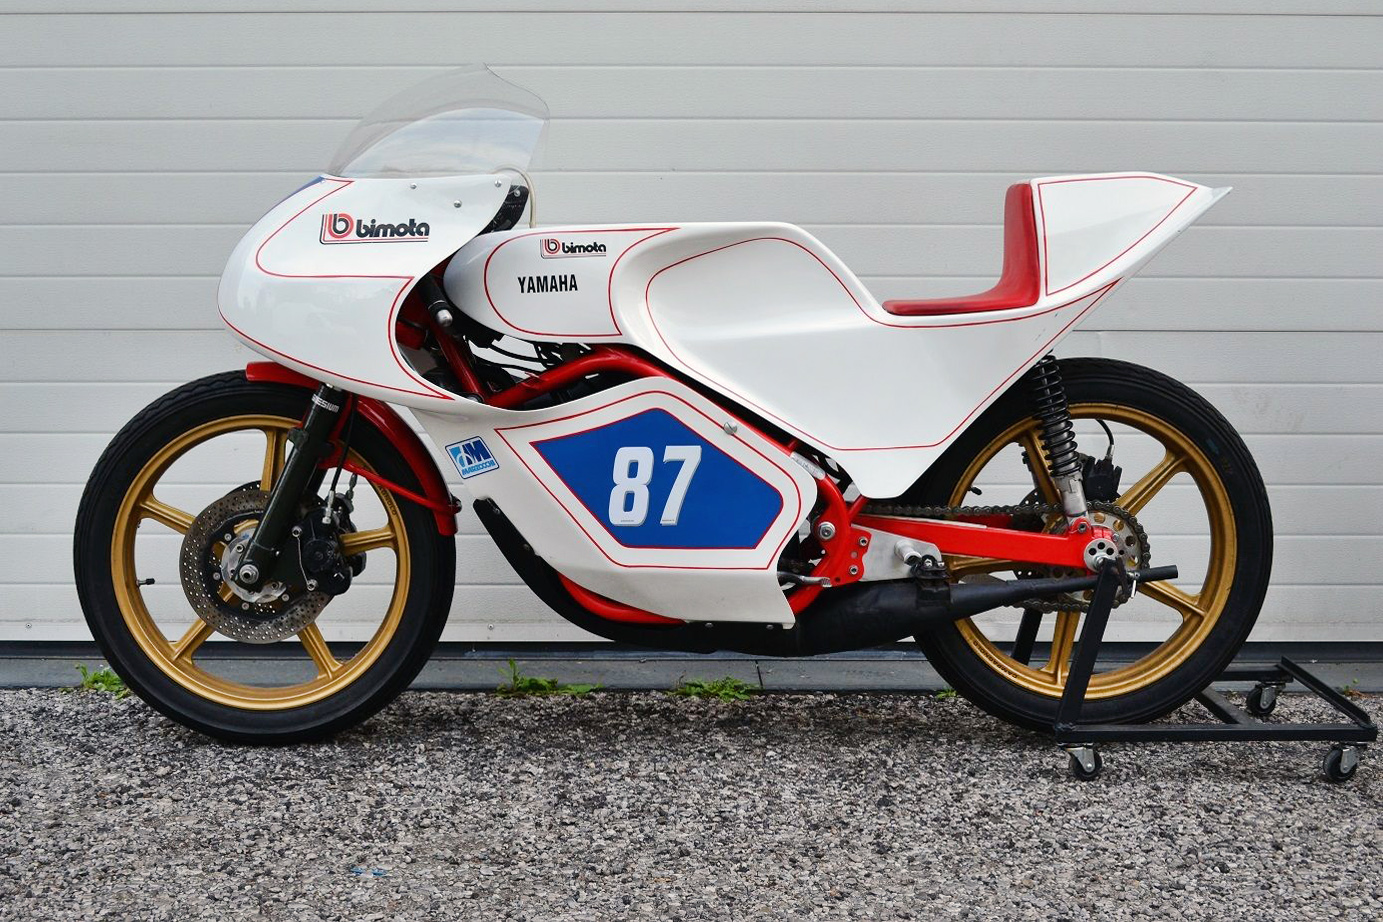 Classic Honda Motorcycles For Sale On Ebay